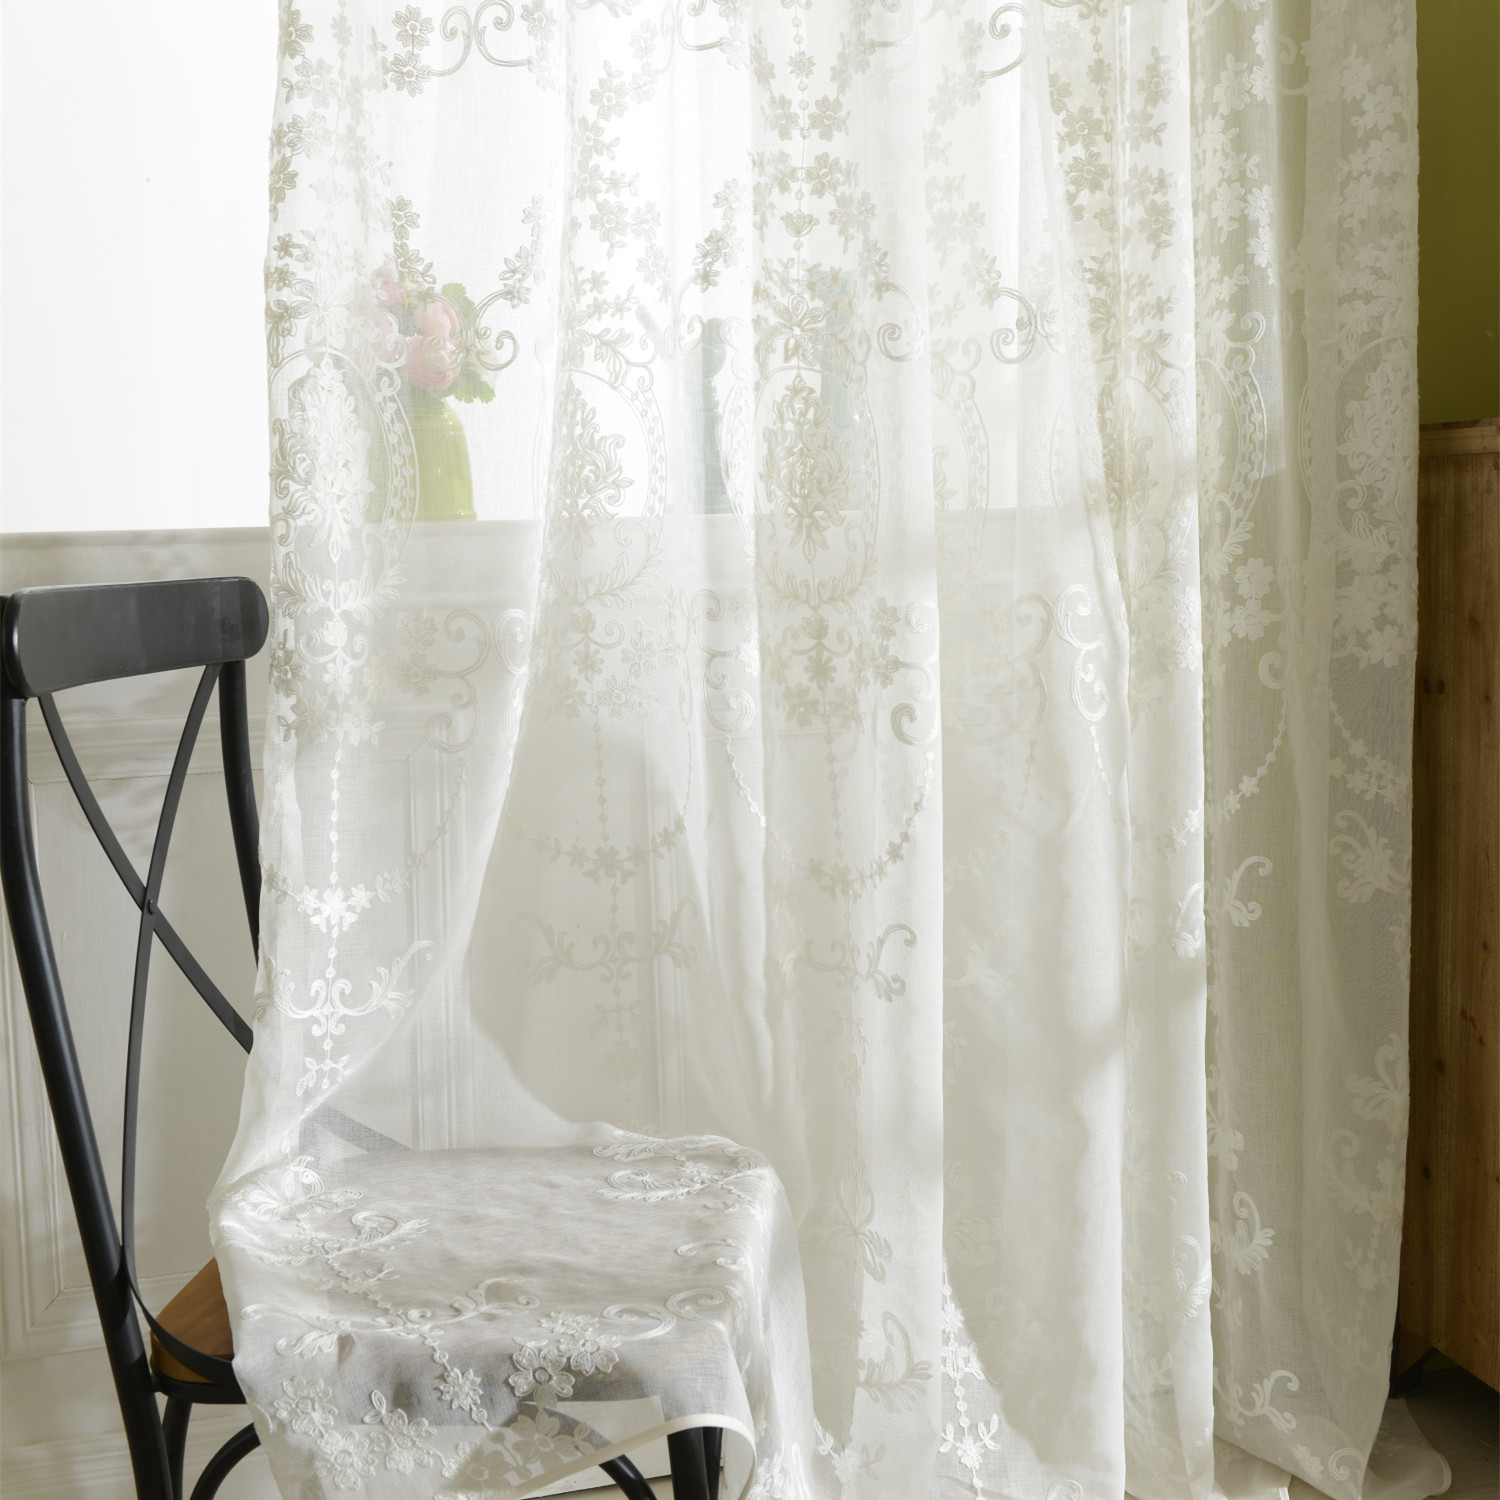 European Embroidered White Tulle Curtains For Living Room European Voile Sheer Curtains For Window Bedroom Lace Curtains